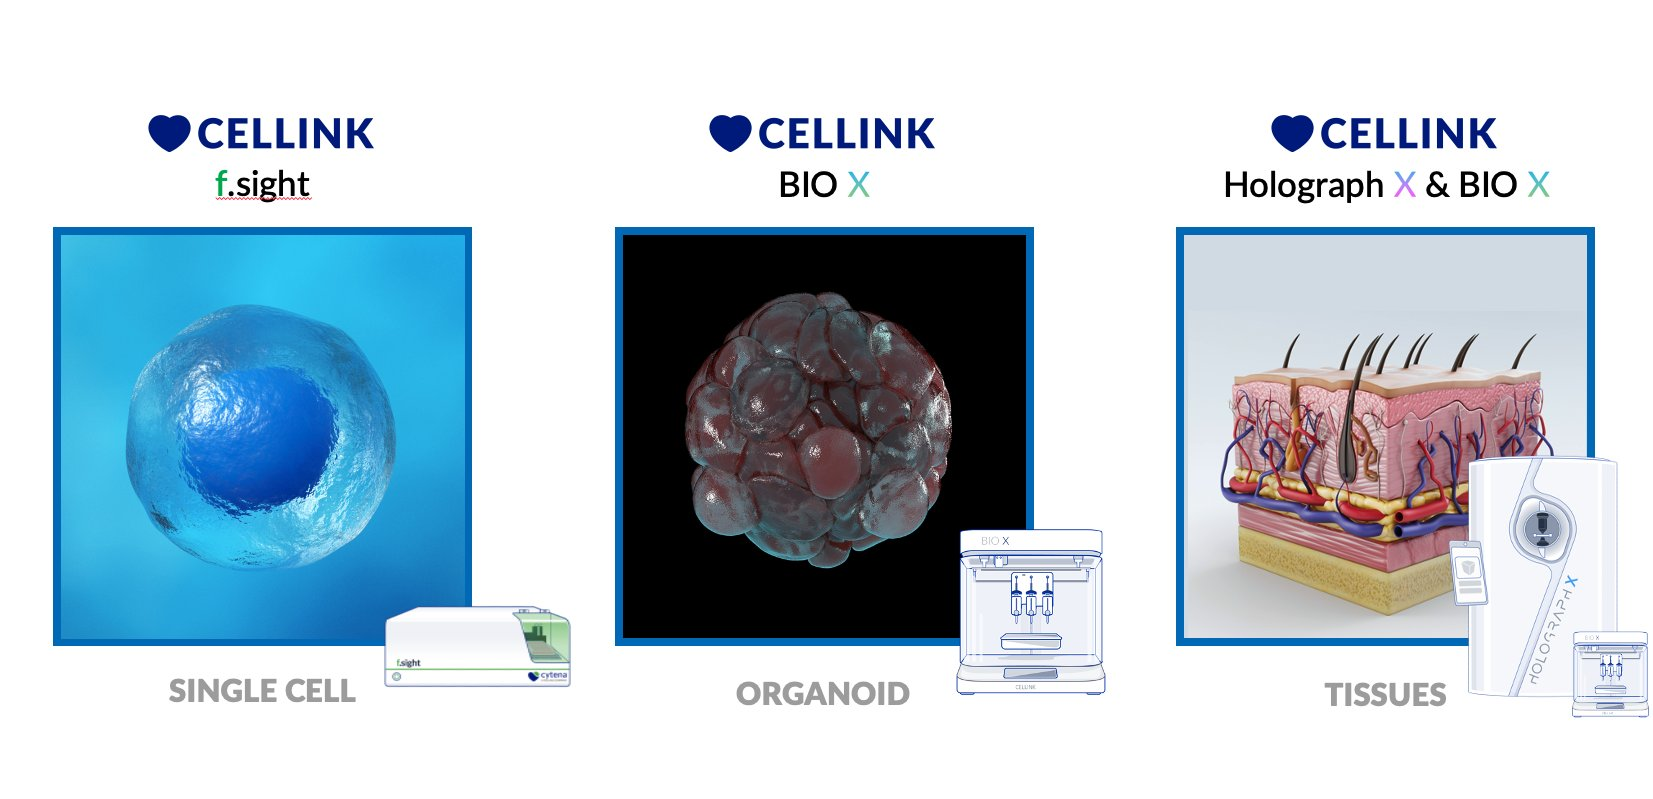 La filiale de Cellink, Cytena, va lancer la technologie mono-cellule « qui change la face du monde